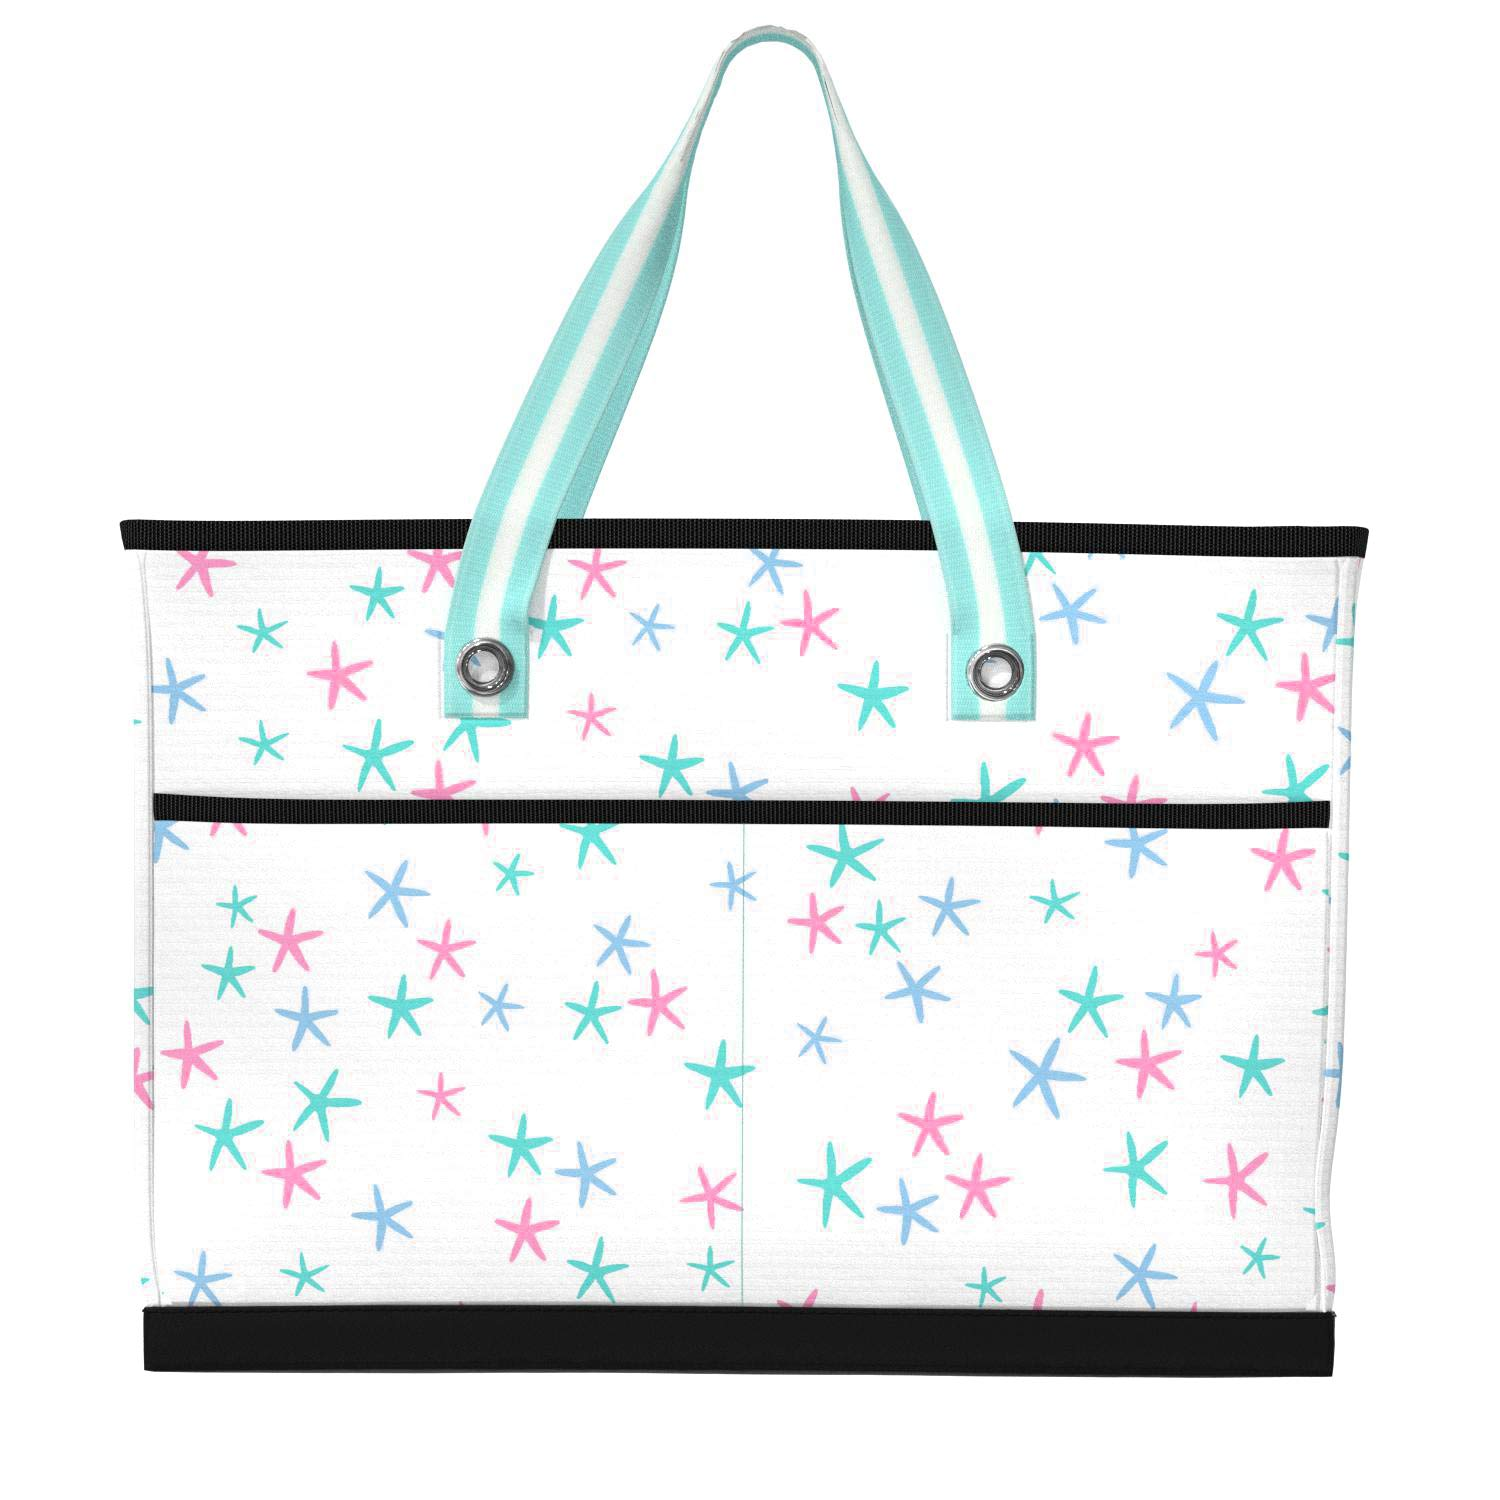 SCOUT BJ BAG, Large Tote Bag for Women with 4 Exterior Pockets and Interior Zippered Compartment, Perfect Utility Tote Bag with Pockets for Teachers and Nurses by SCOUT (Image #5)